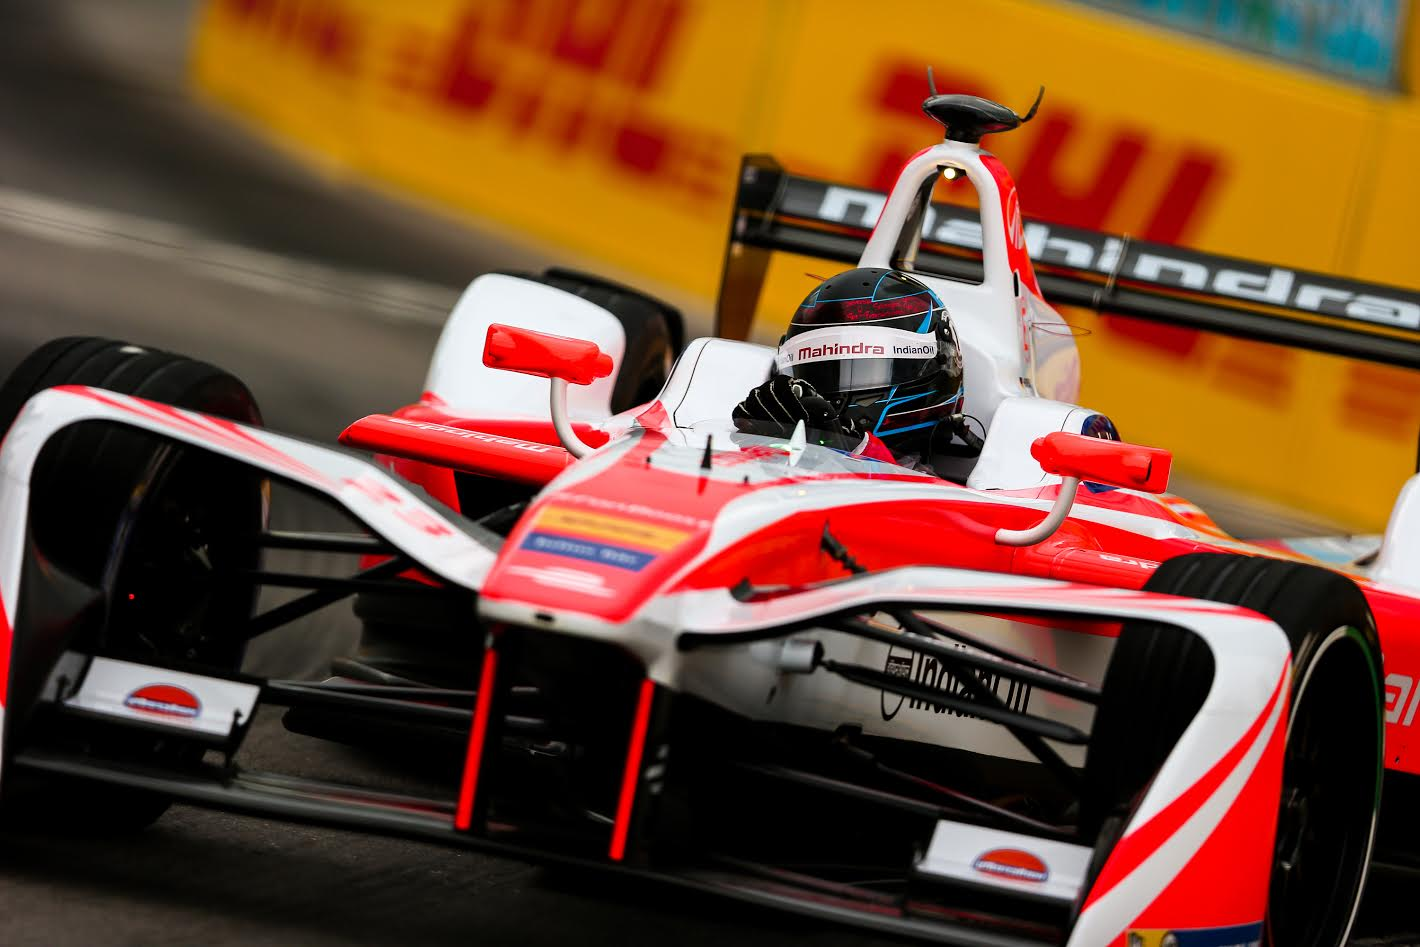 Paris Mahindra Racing Recorded Their Best Ever Double Points Finish In The Fia Formula E Championship After Nick Heidfeld And Felix Rosenqvist Came Home